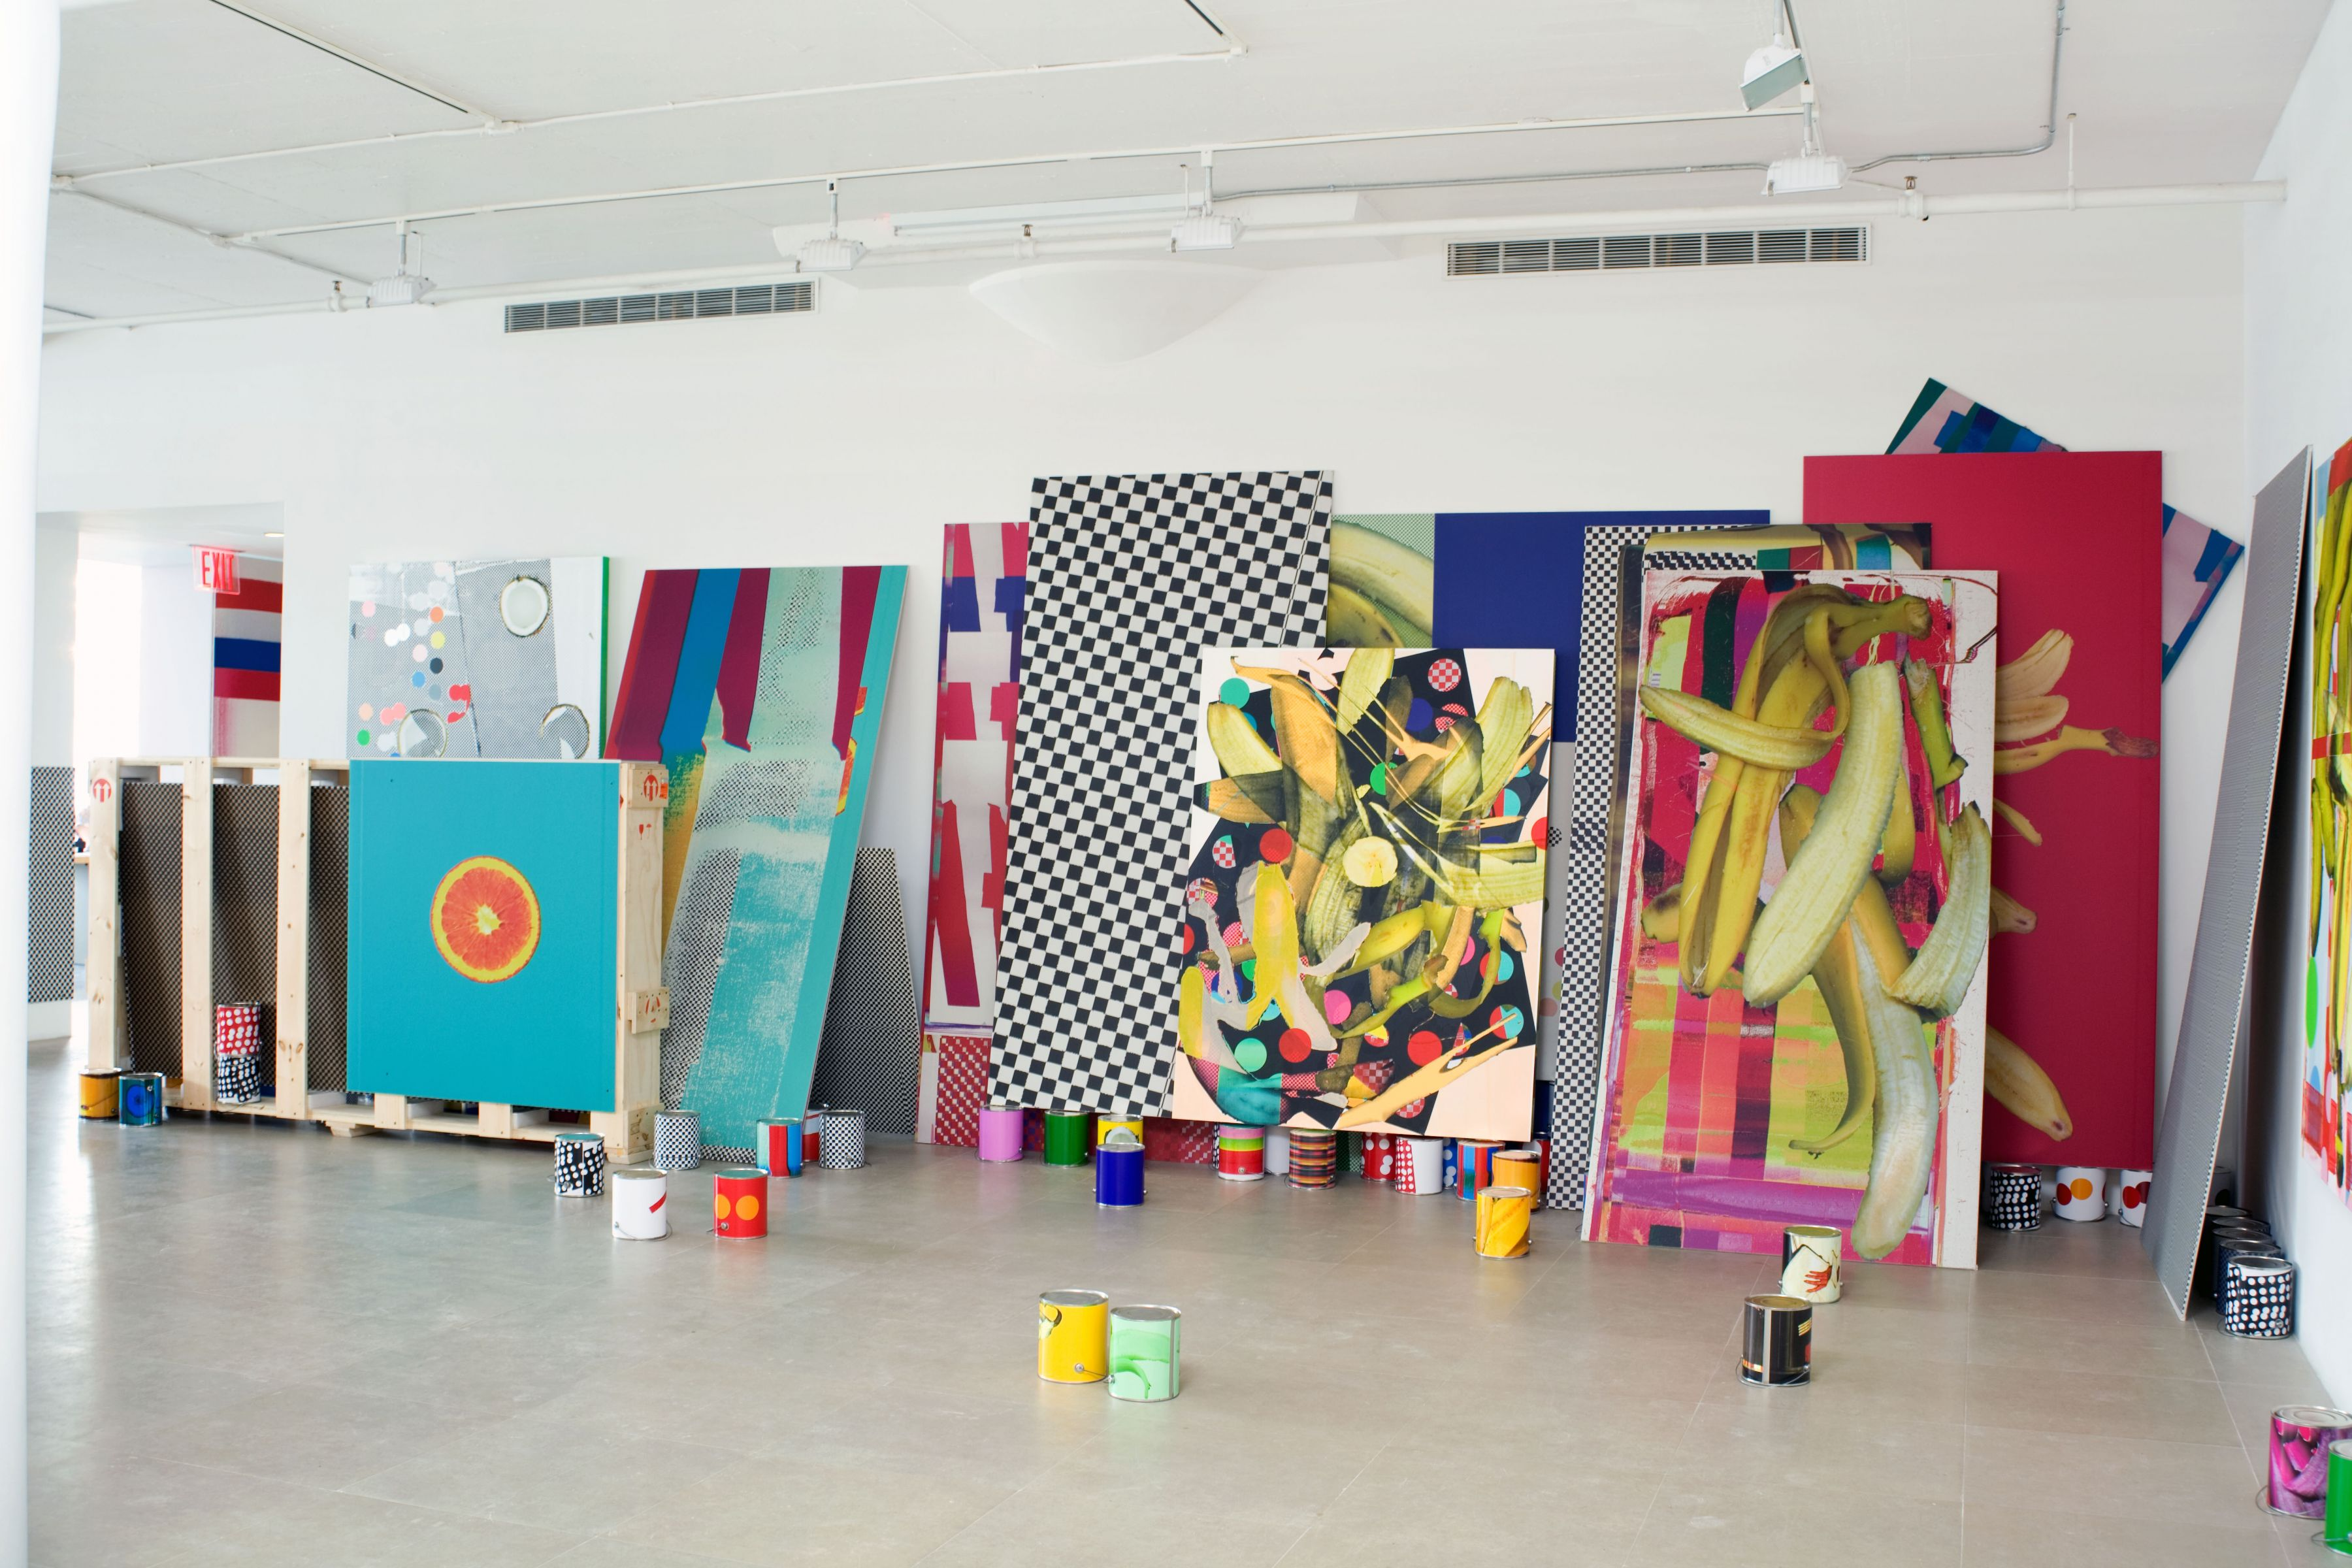 Guyton\ Walker Untitled, 2009 paint, silkscreen, and inkjet print on canvas, inkjet print on drywall, inkjet prints on paint cans, and crate with printed drywall 114 x 320 x 70 inches overall 289.6 x 812.8 x 177.8 cm